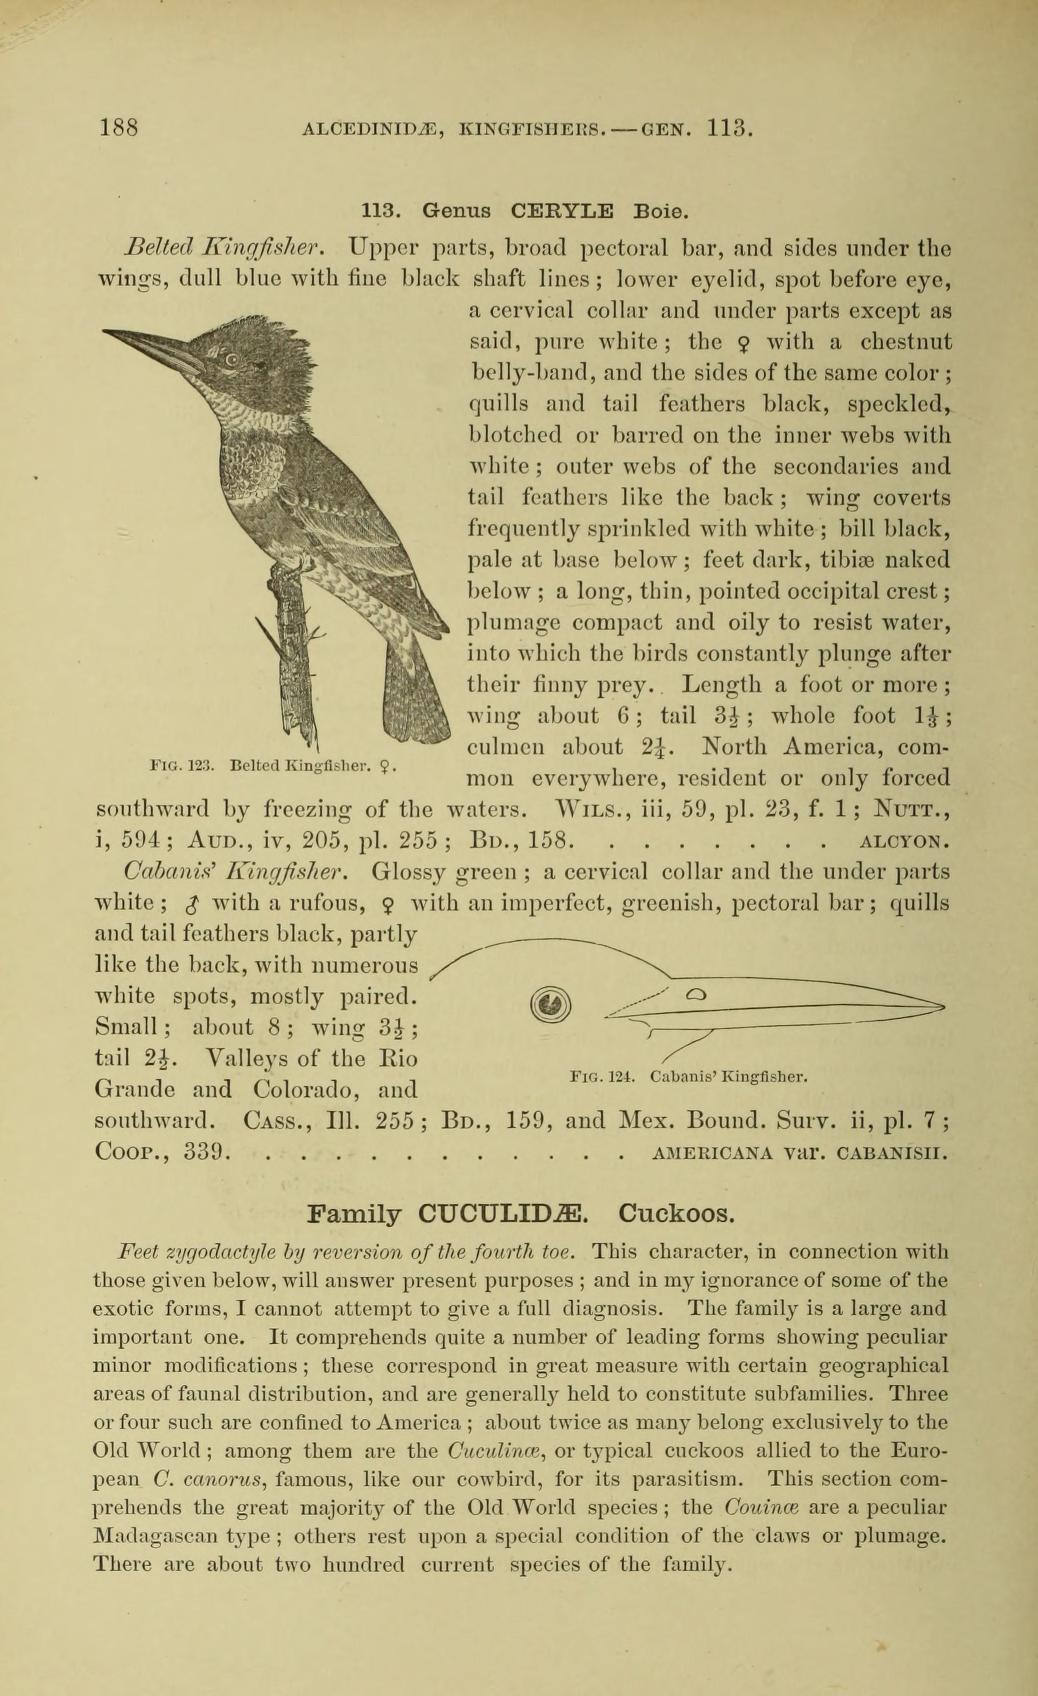 black and white illustration of a female belted kingfisher perched on a branch